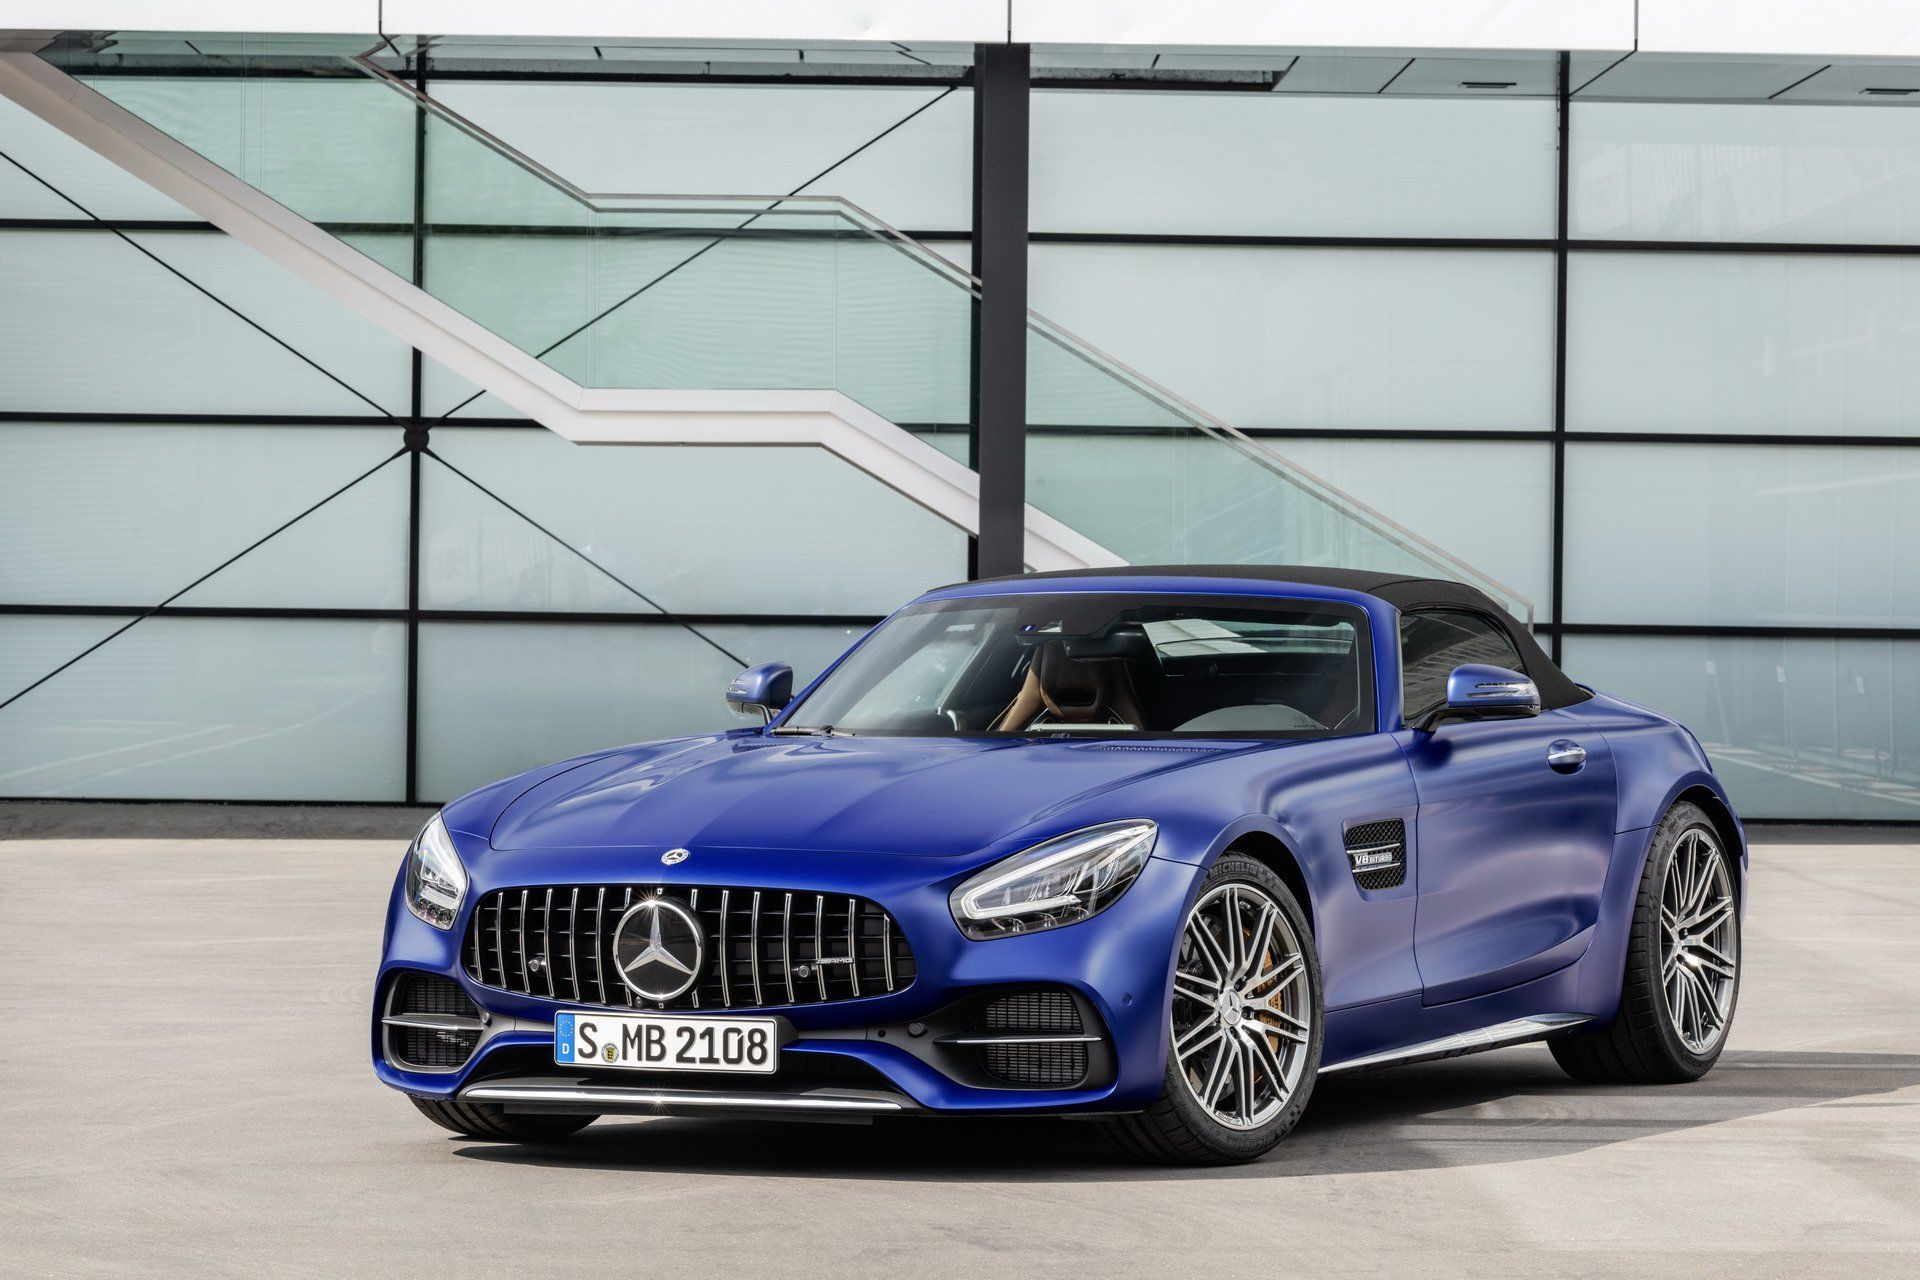 2020 Mercedes Amg Gt R Pro Headlines Updated 2 Door Gt Family Carscoops Mercedes Amg Benz Mercedes Benz